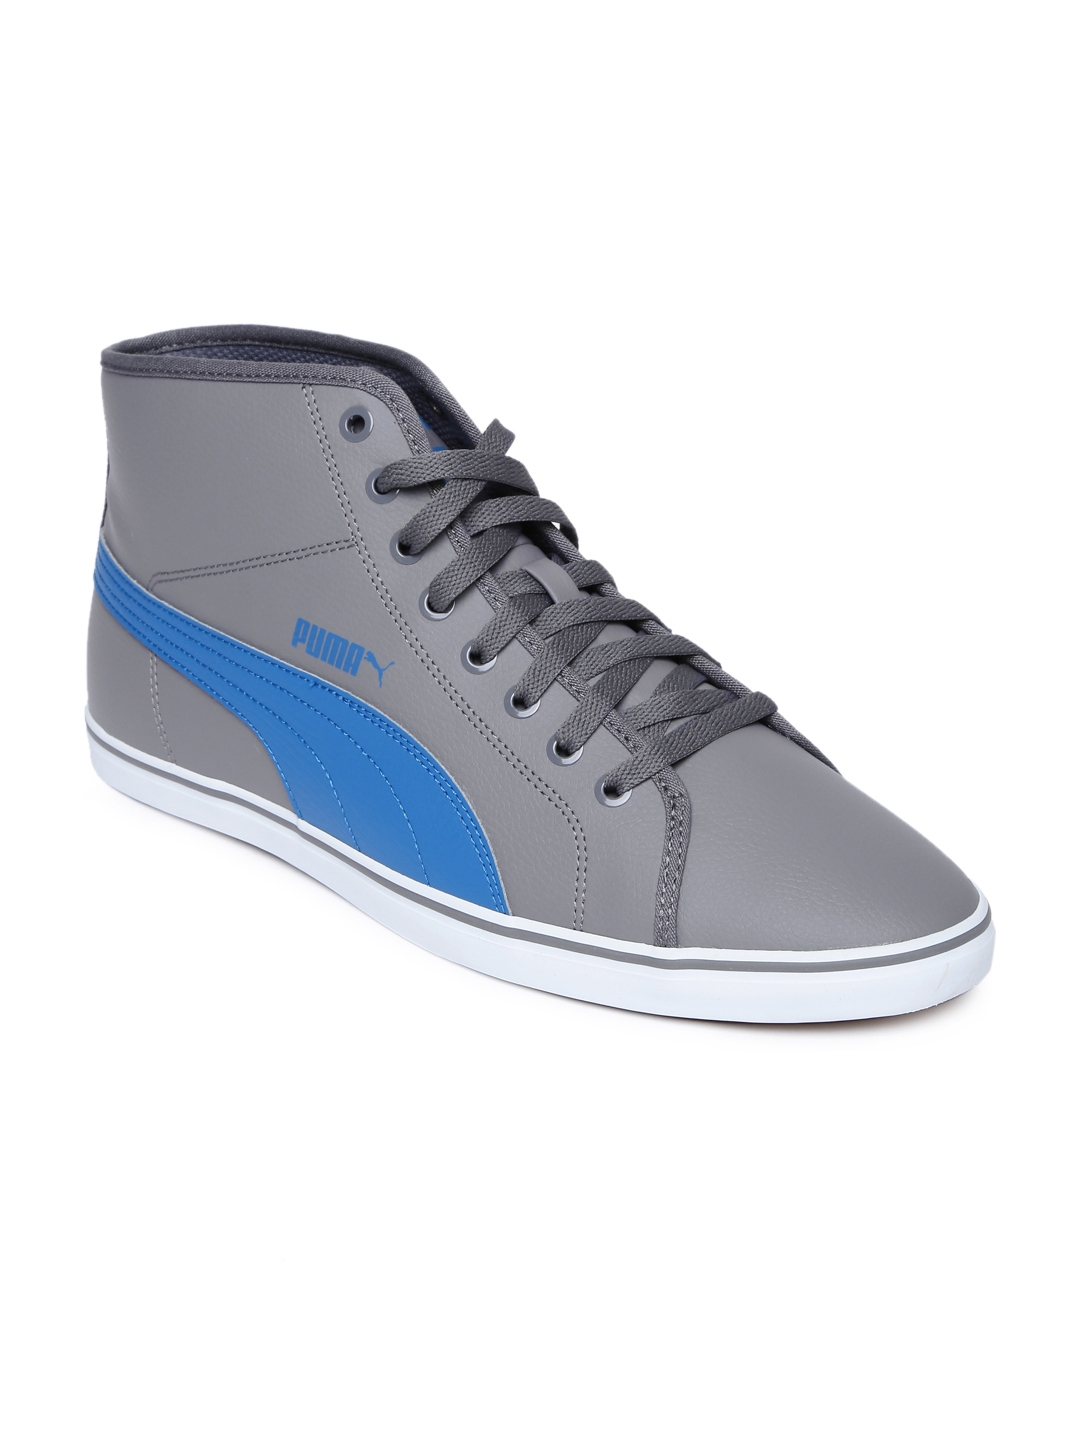 60687db5a67 Buy Puma Men Grey Solid Synthetic Leather Elsu V2 Mid Top Sneakers ...